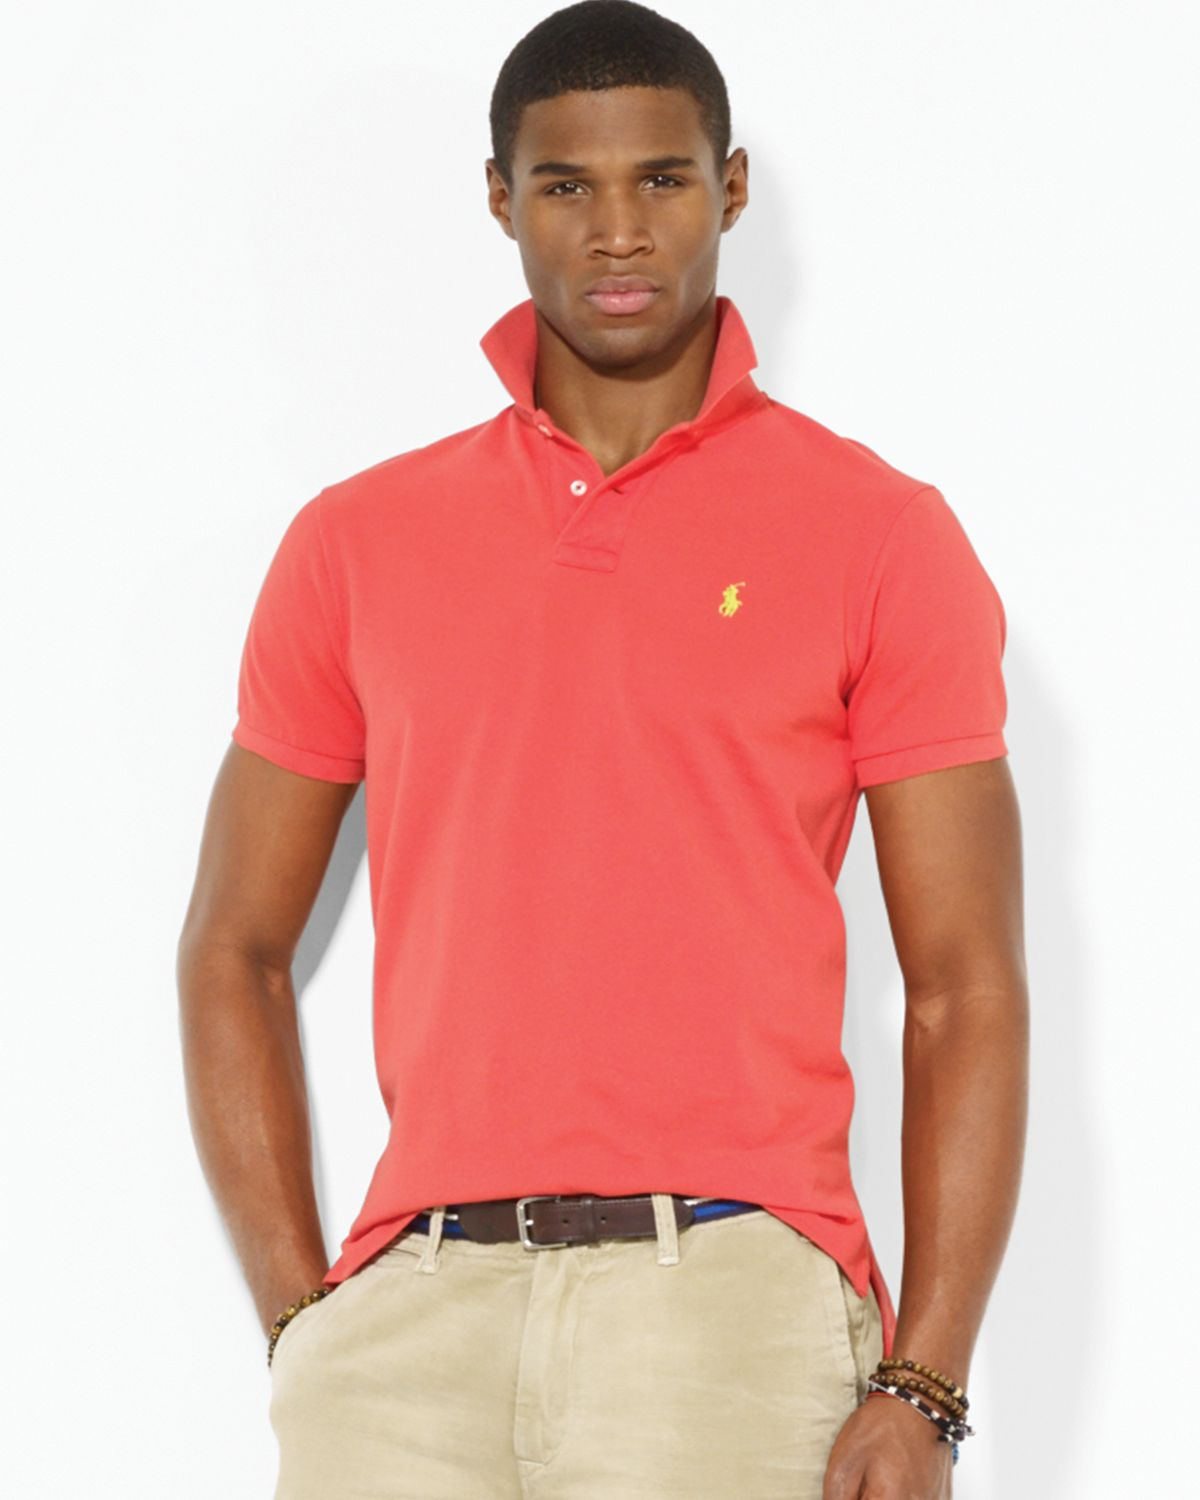 Ralph lauren polo custom mesh polo shirt slim fit in red for Ralph lauren custom fit mesh polo shirt